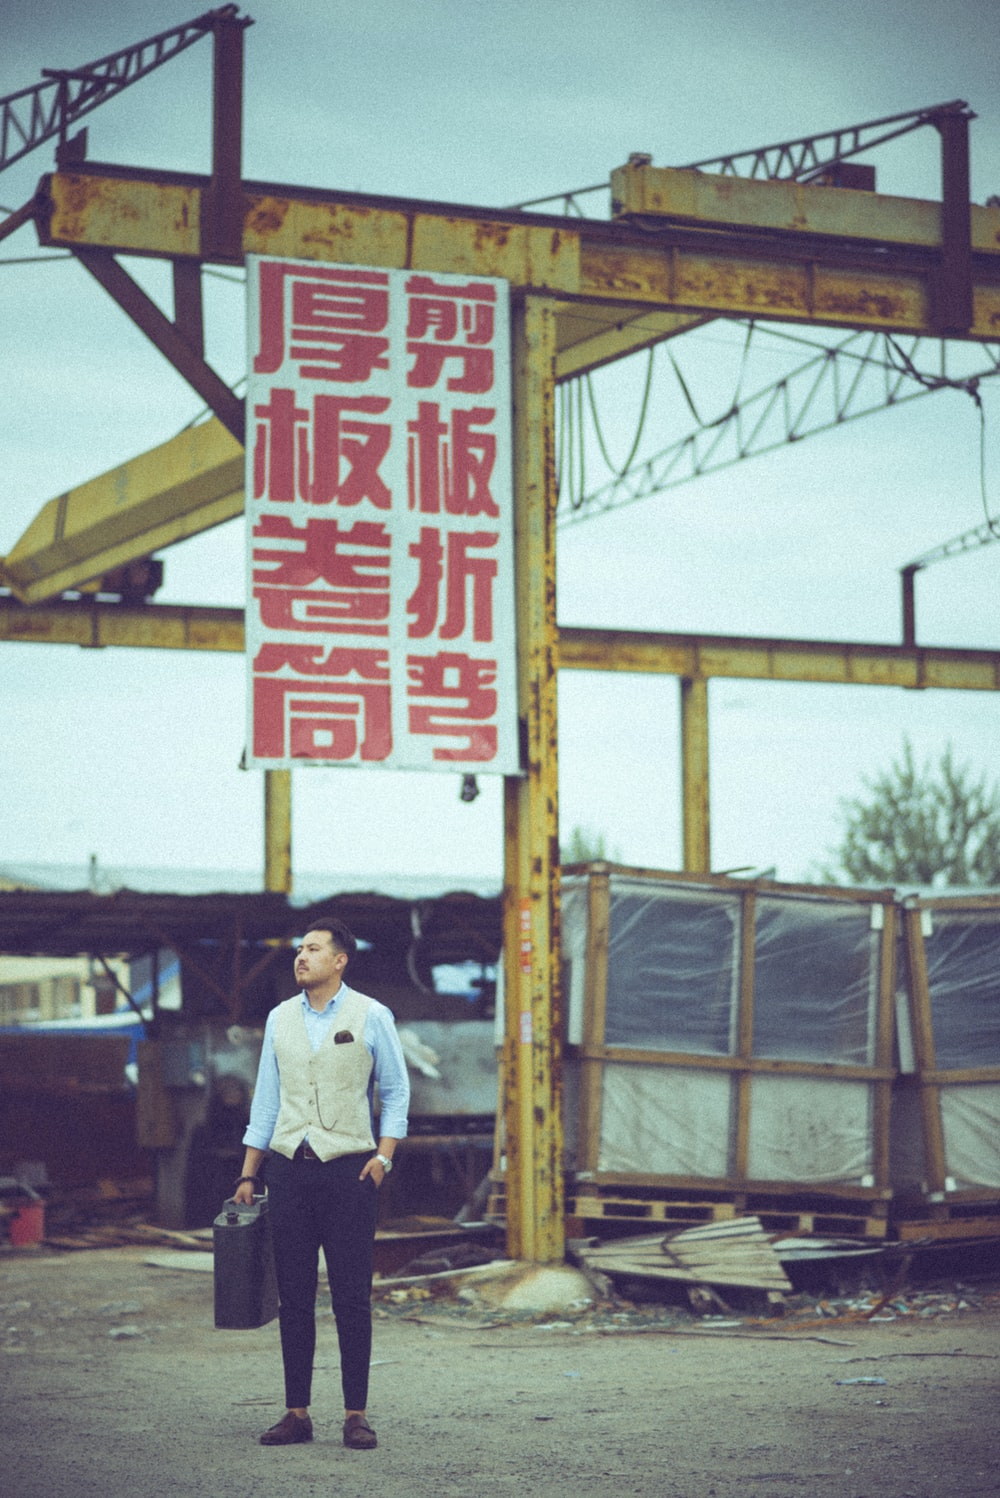 man carrying case standing near signage board